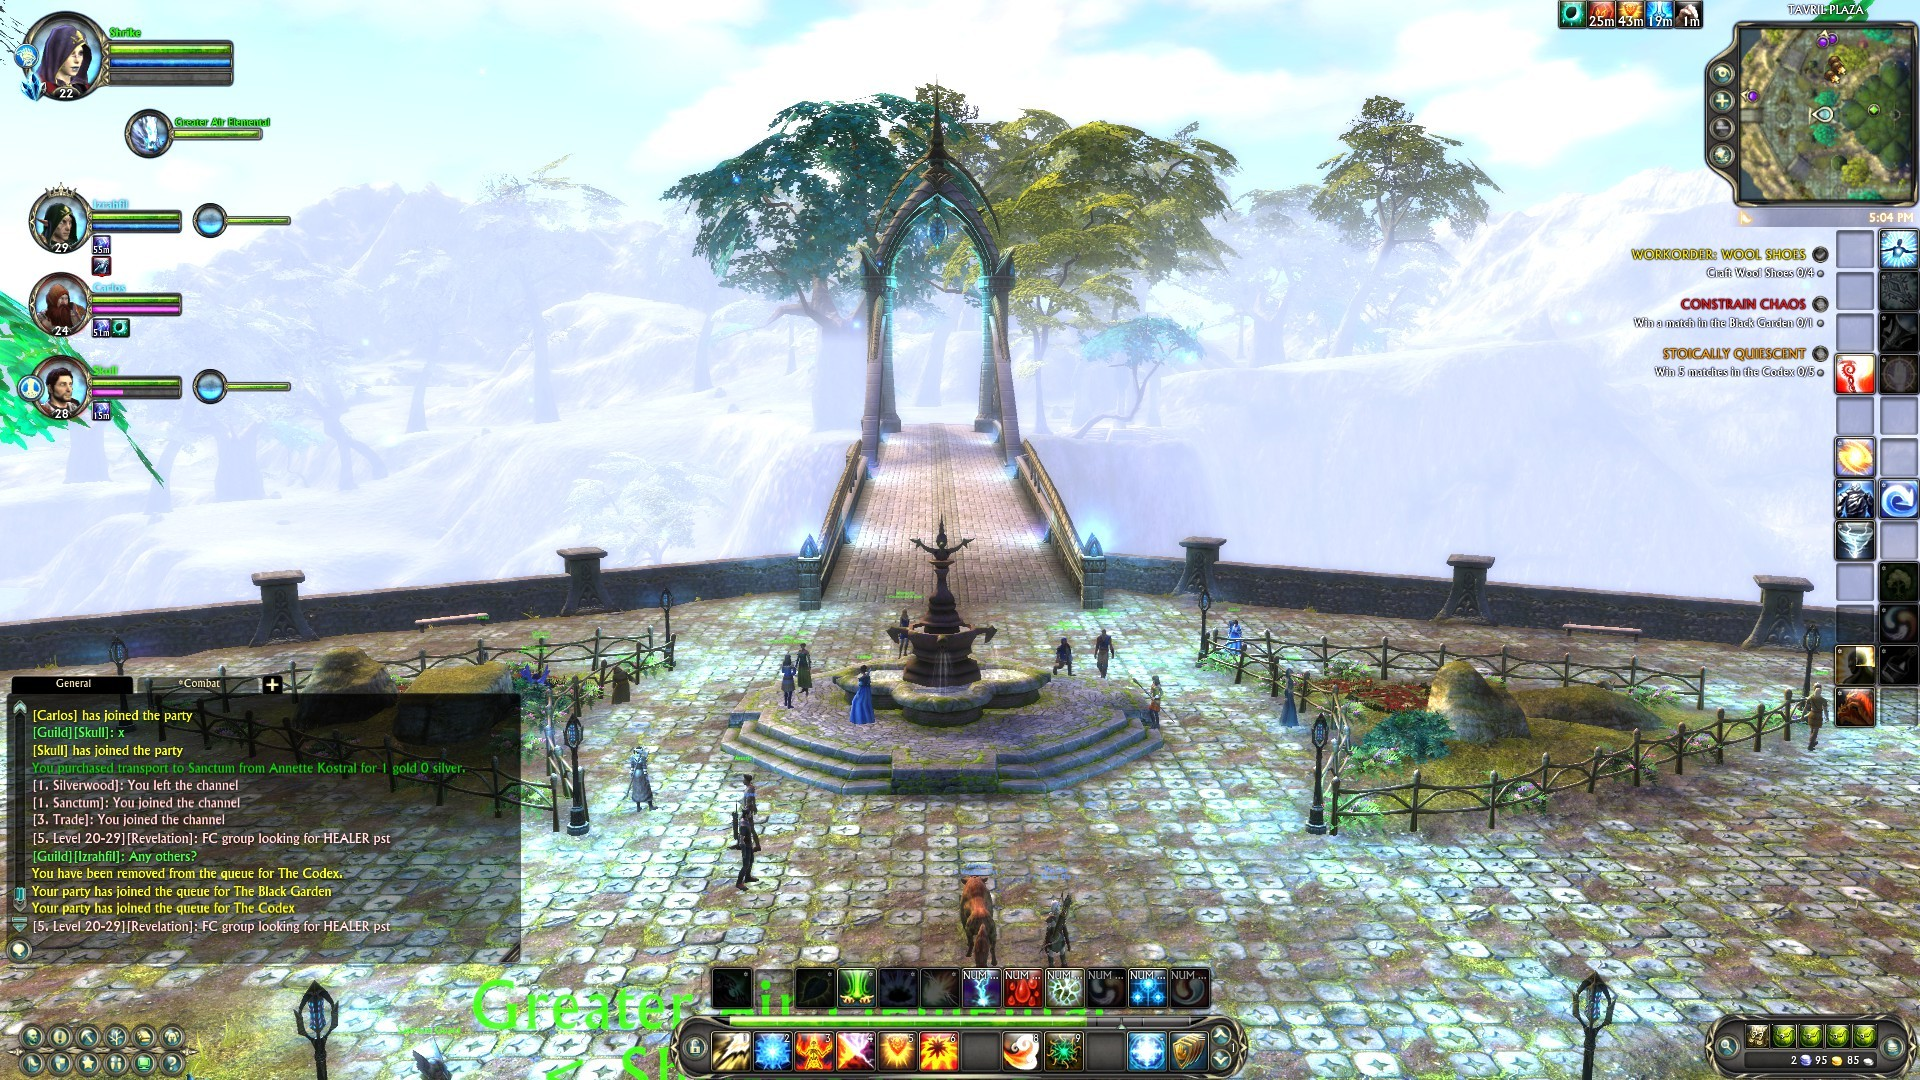 Rift - The misty bridge entrance to Sanctum